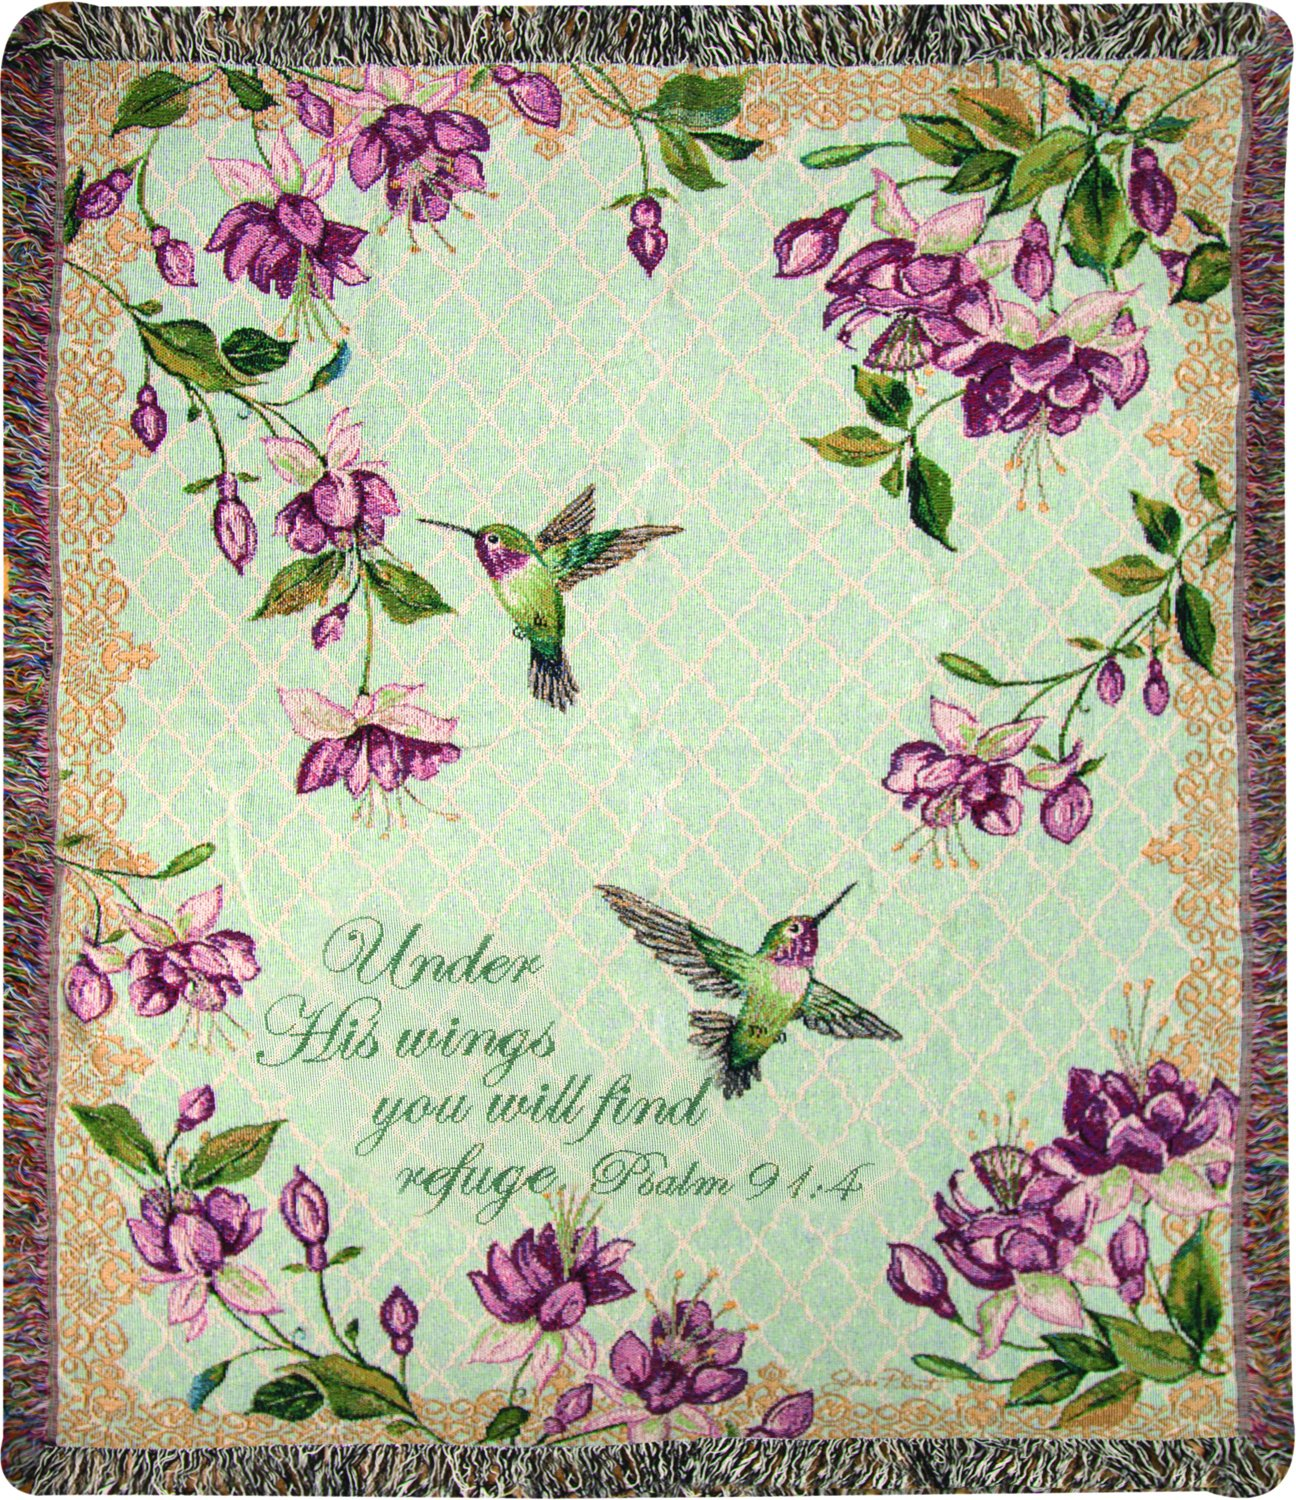 Manual Woodworkers & Weavers Tapestry Throw, Psalm 91:4, 50 x 60, Ruby's Among The Fuchsia's Scripture